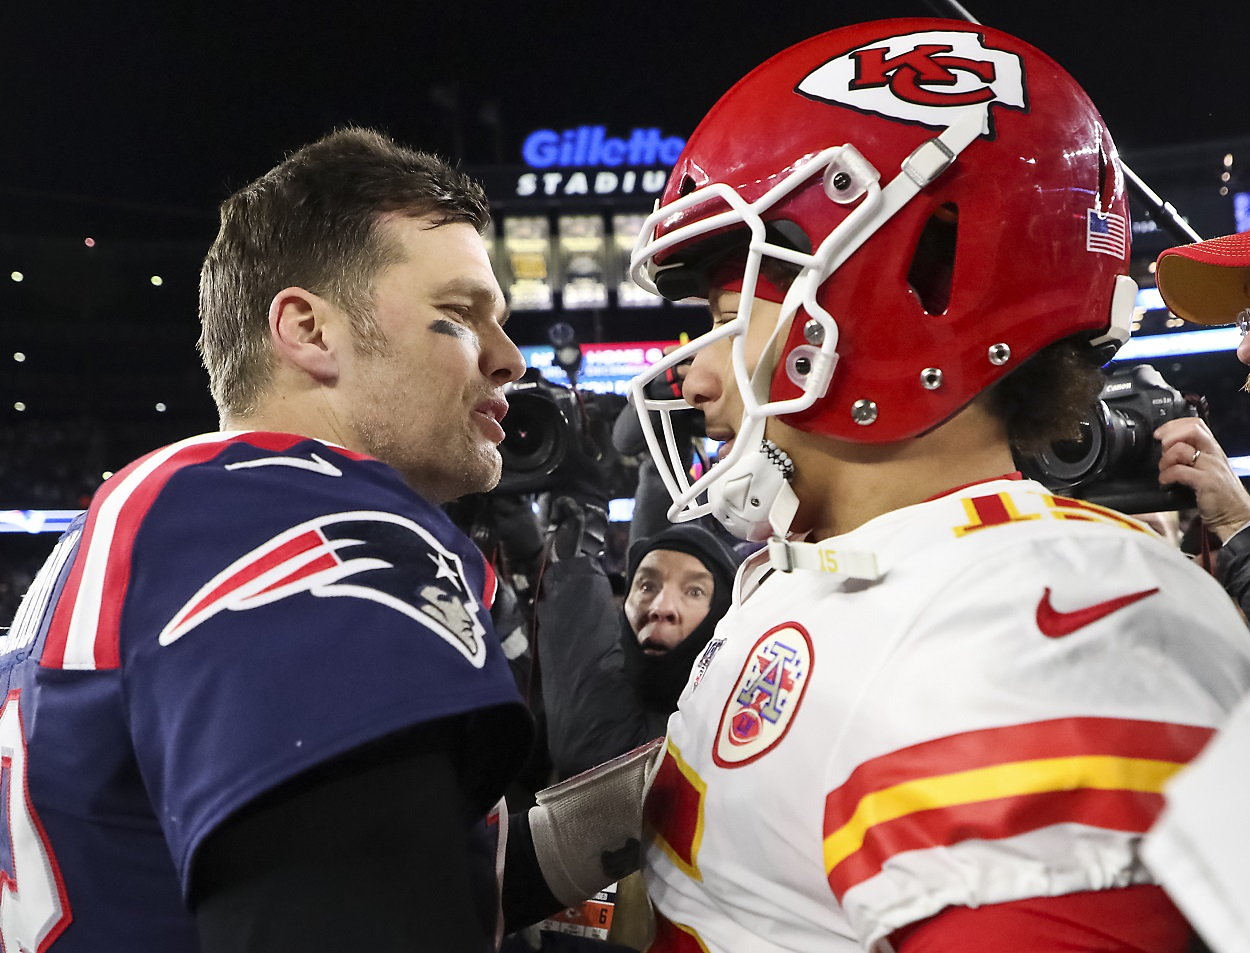 How Old Was Patrick Mahomes When Tom Brady Won His First Super Bowl?